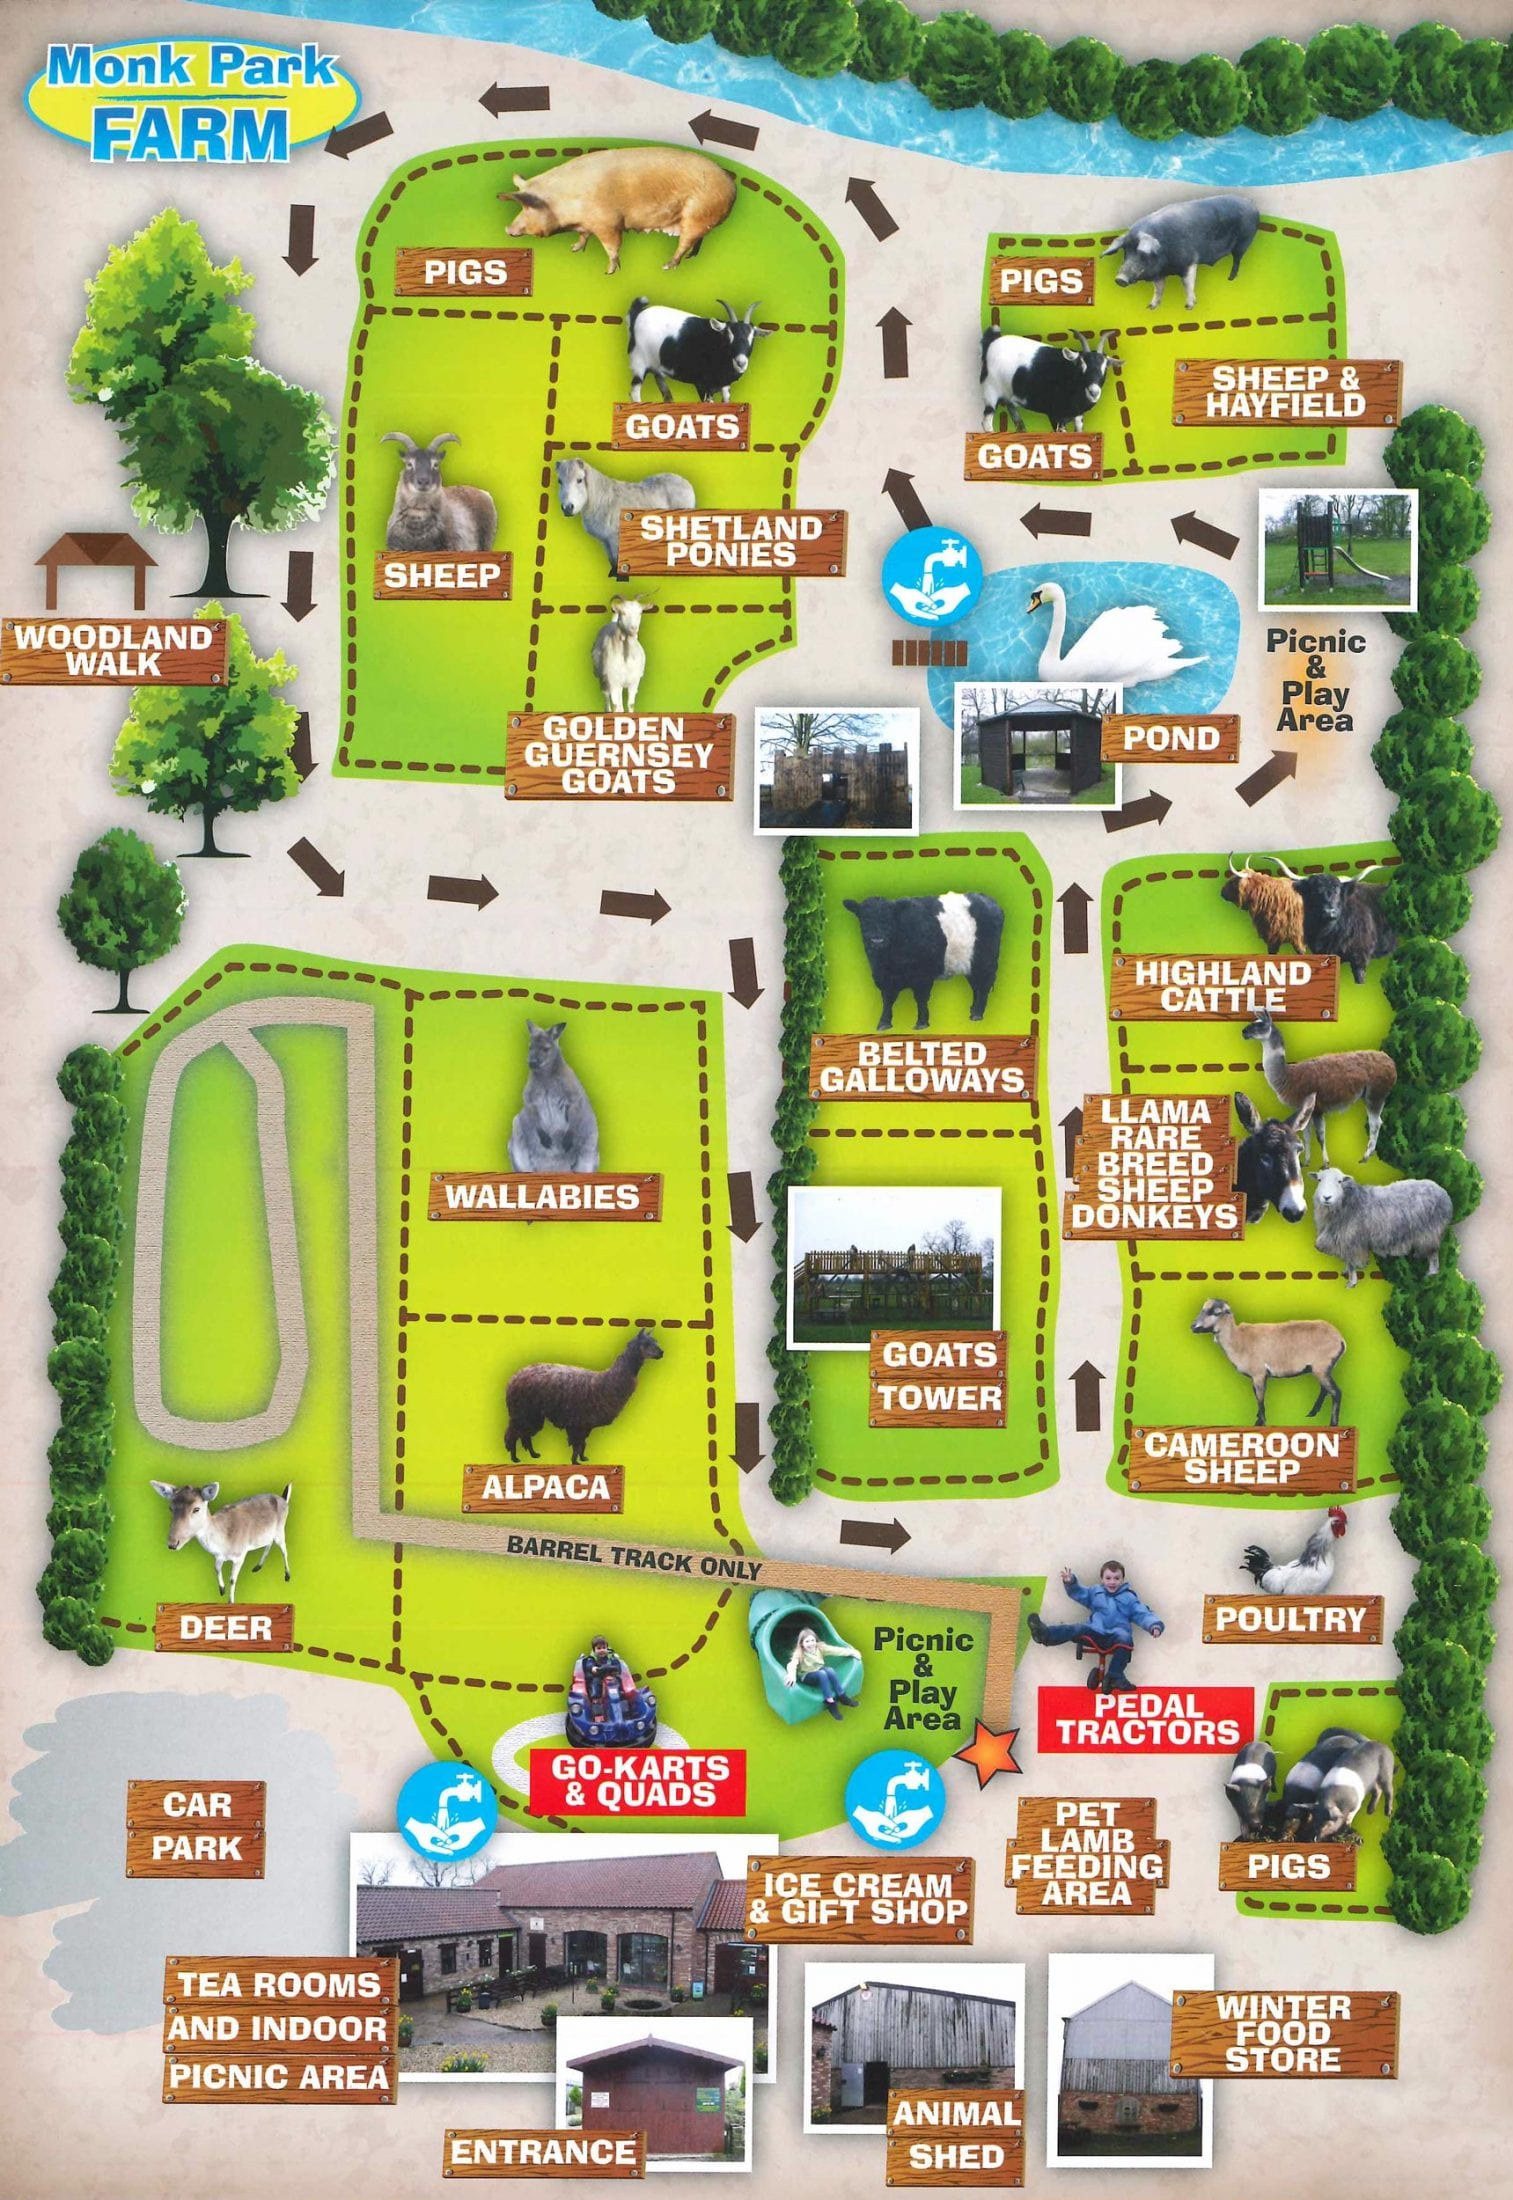 Monk Park Farm Map